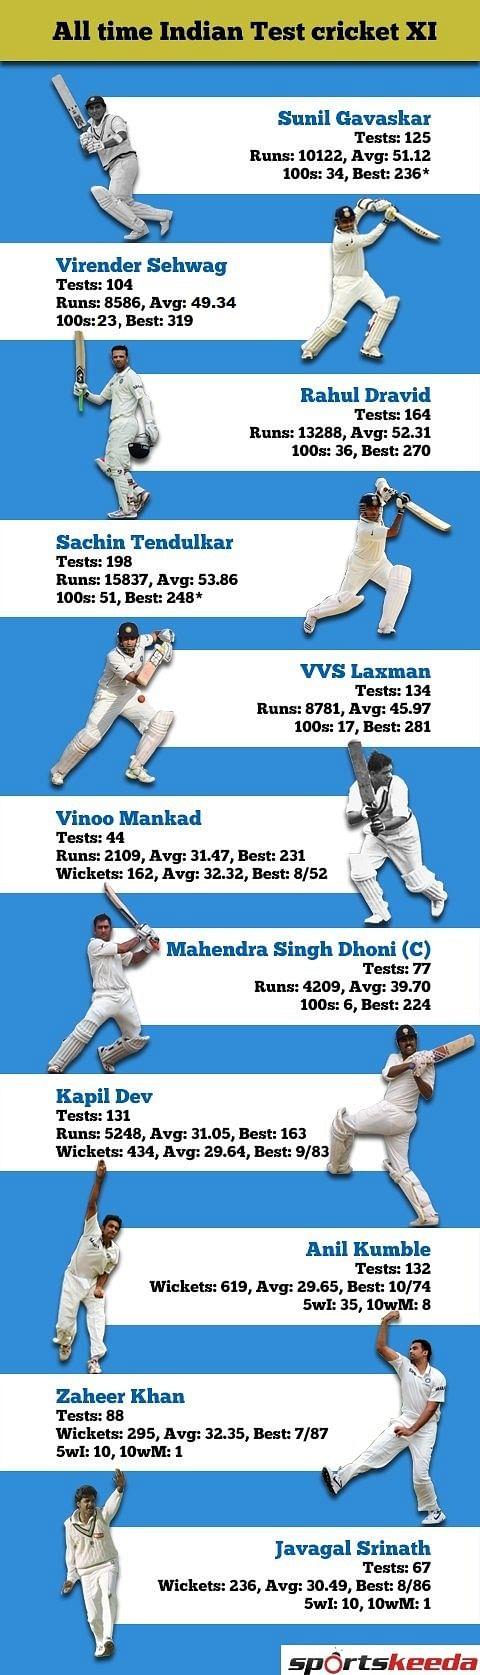 All-time Indian Test XI